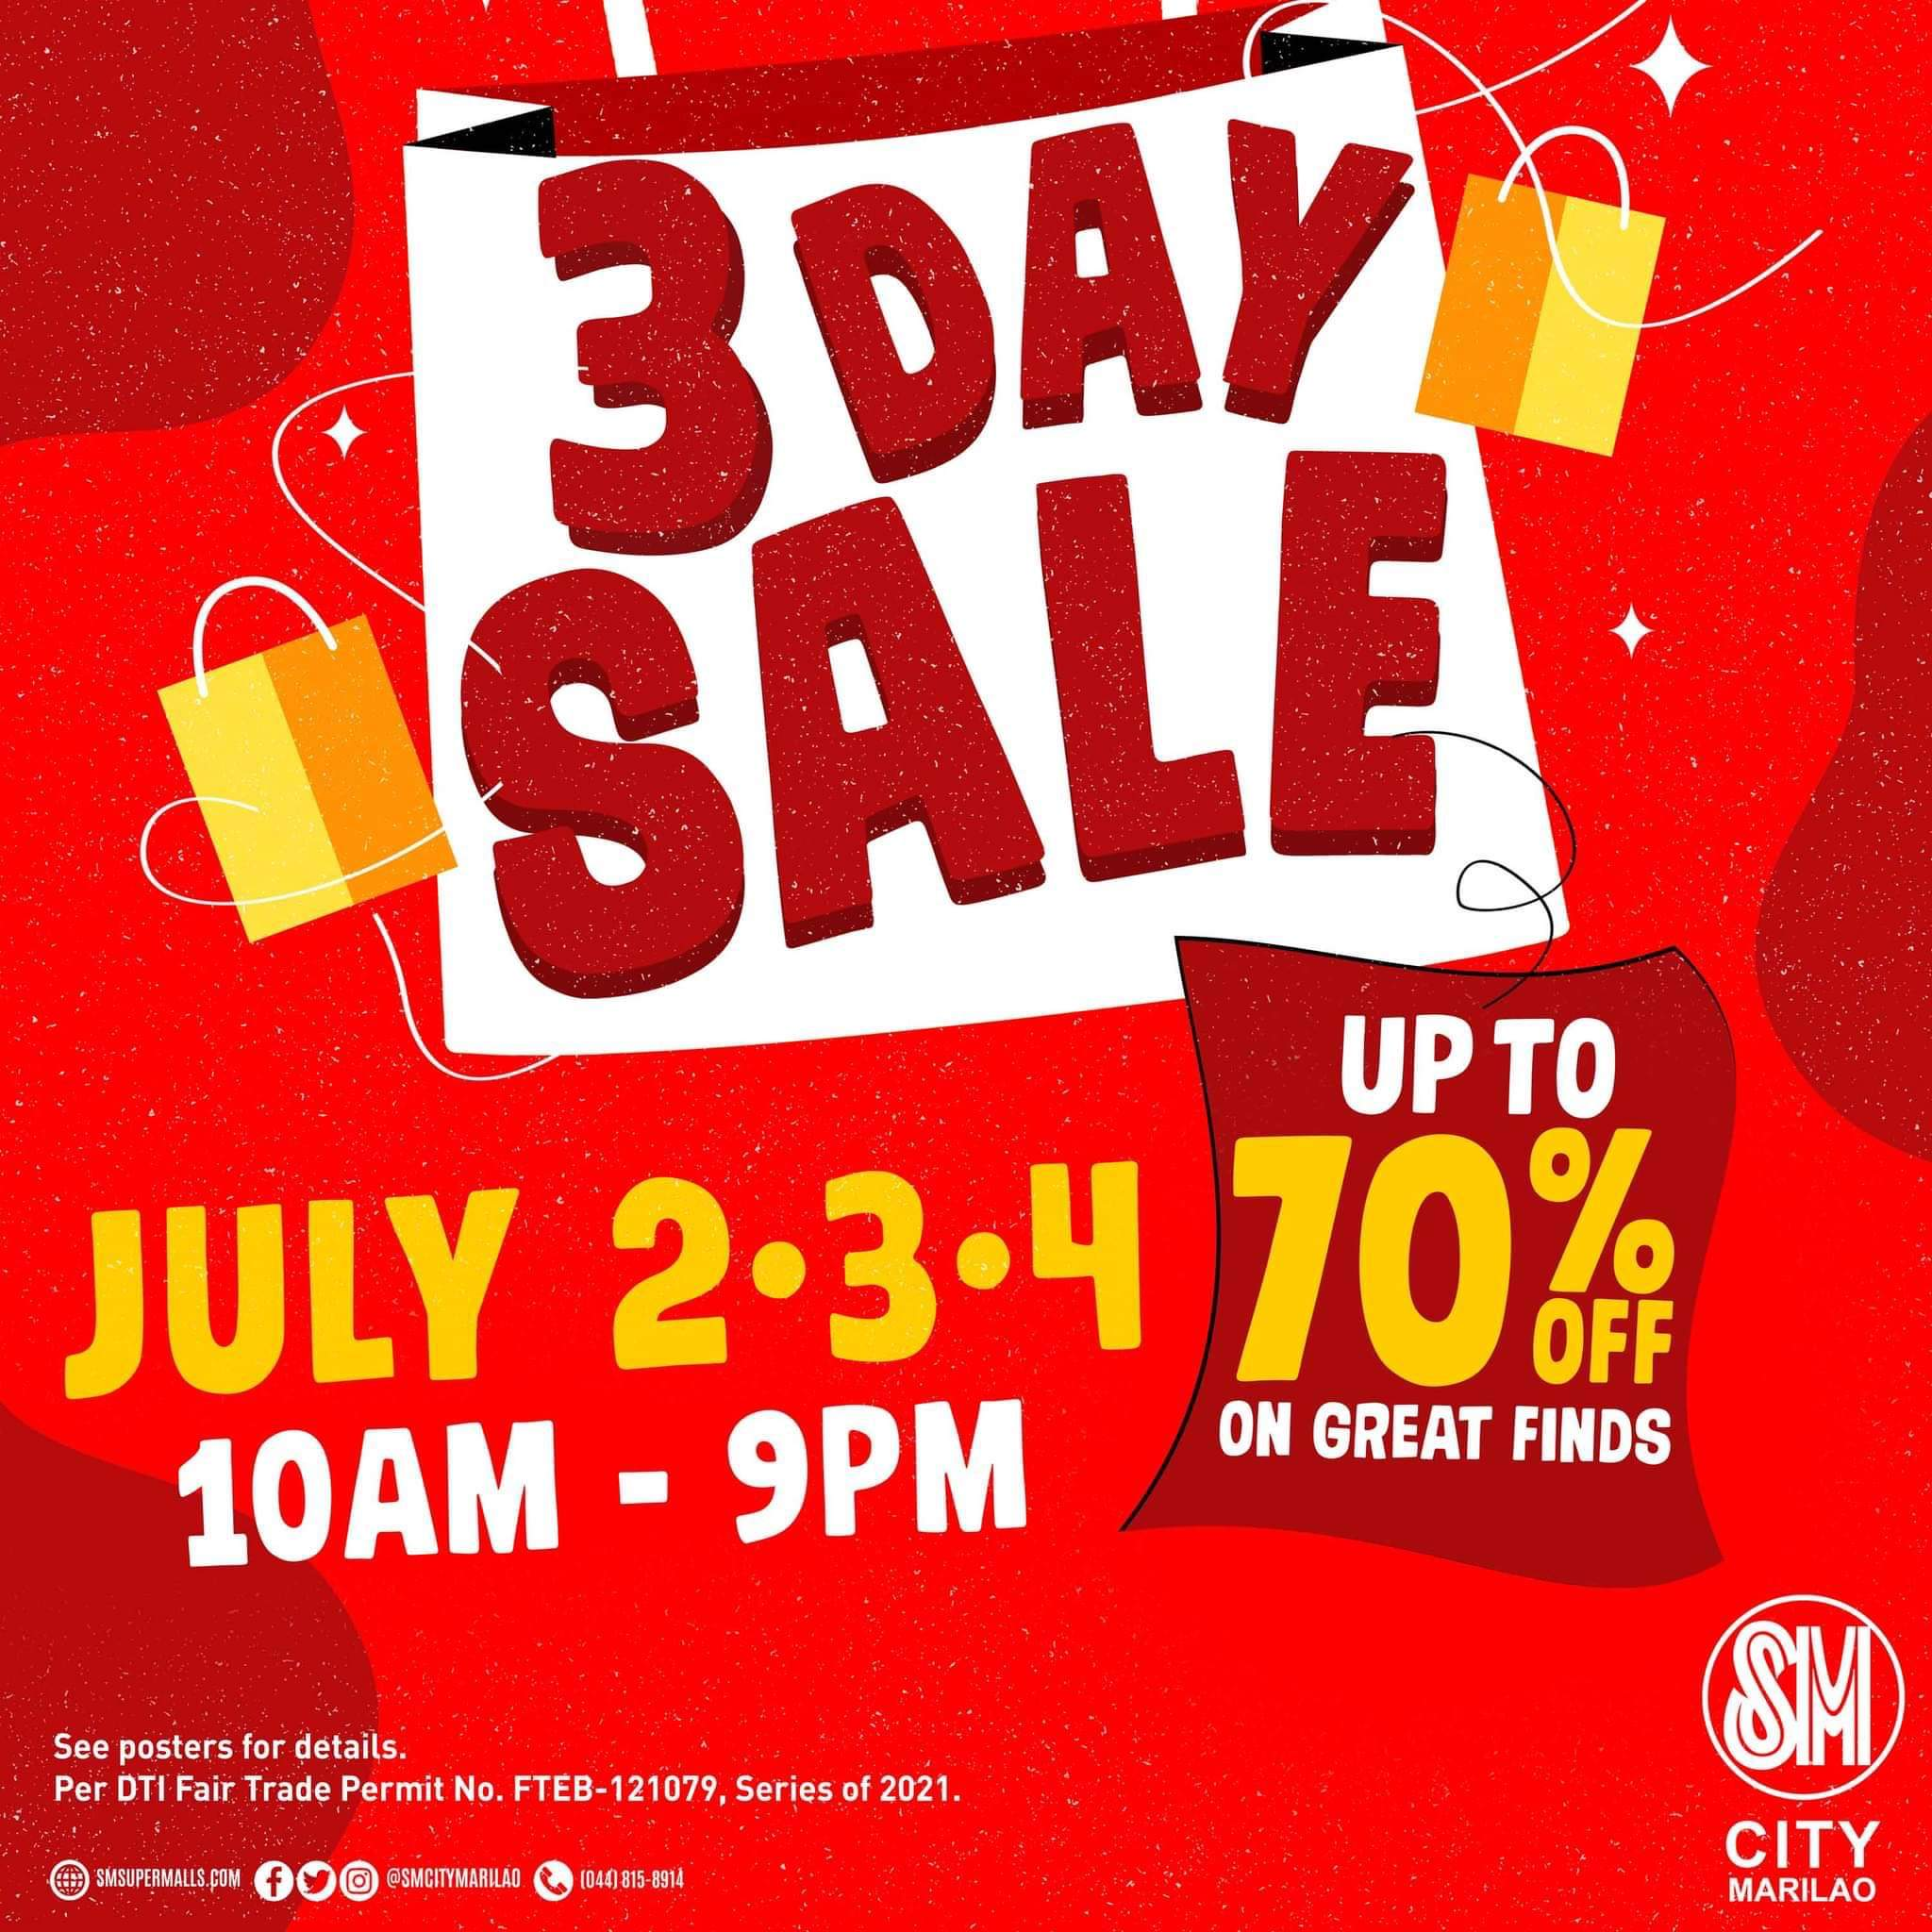 SM City Marilao rolls out 3-day mid-year sale